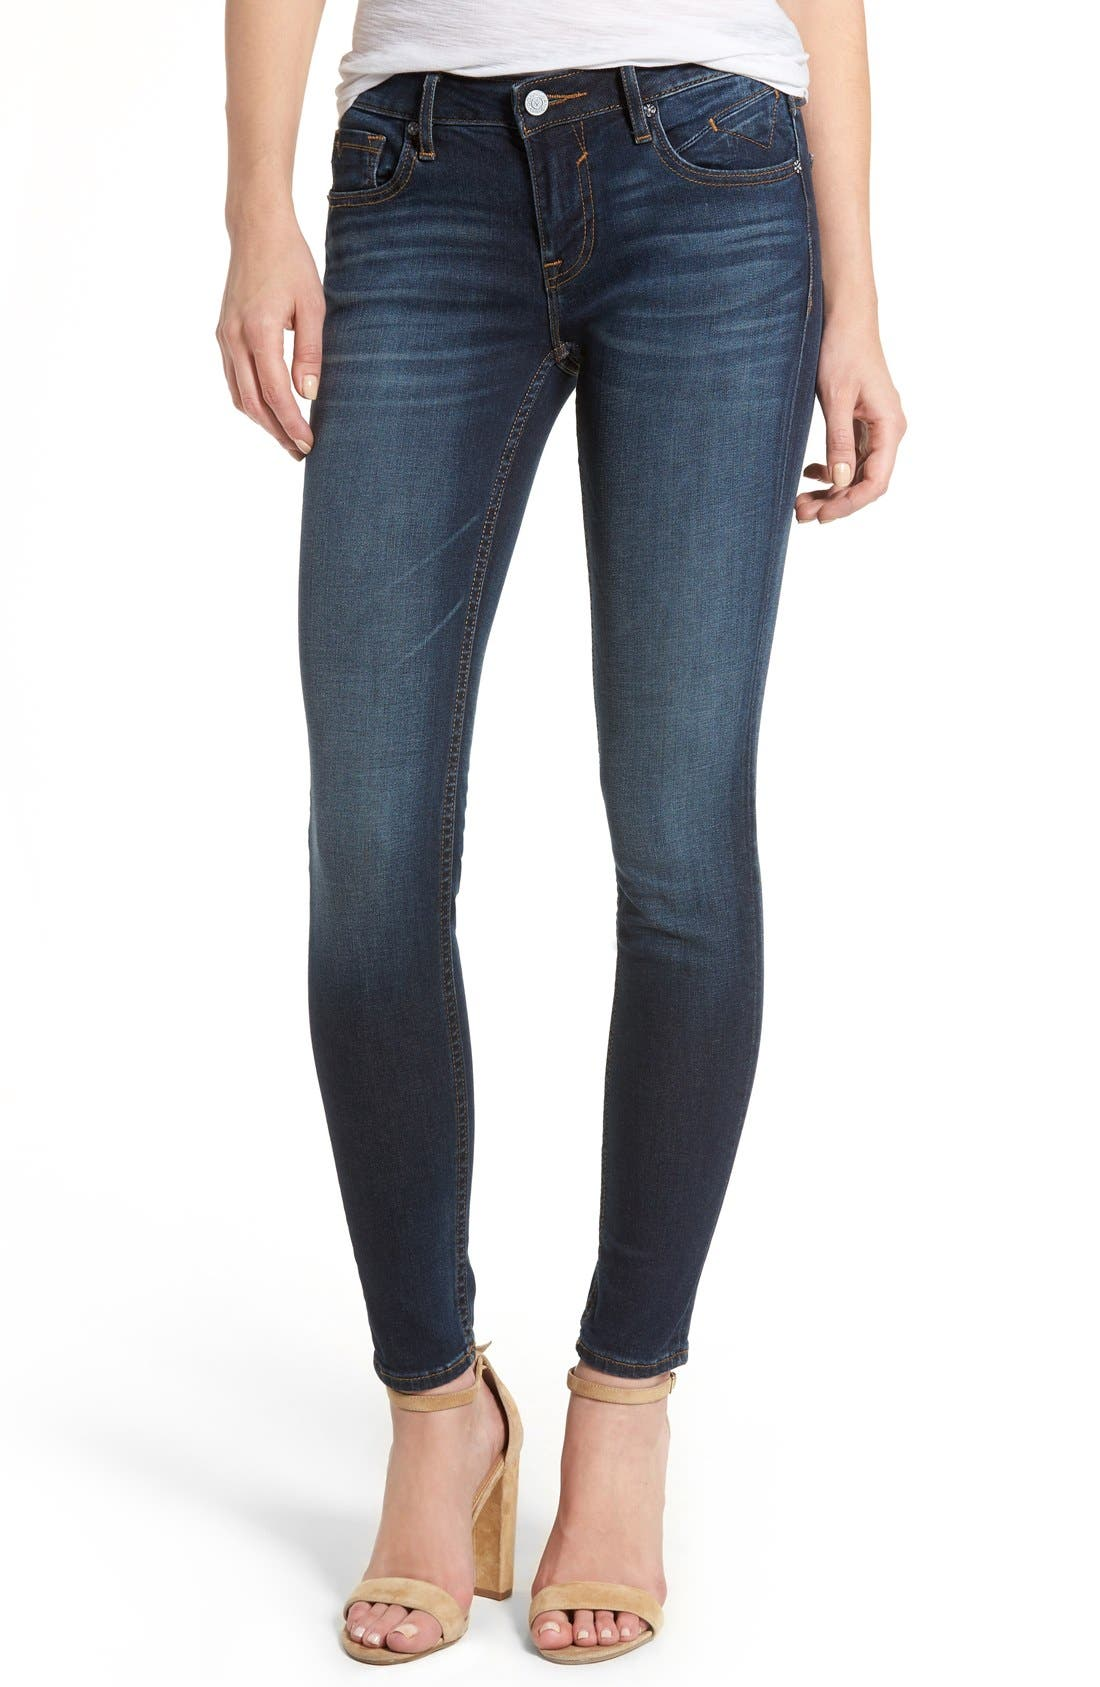 Jagger Skinny Jeans,                             Main thumbnail 1, color,                             DARK